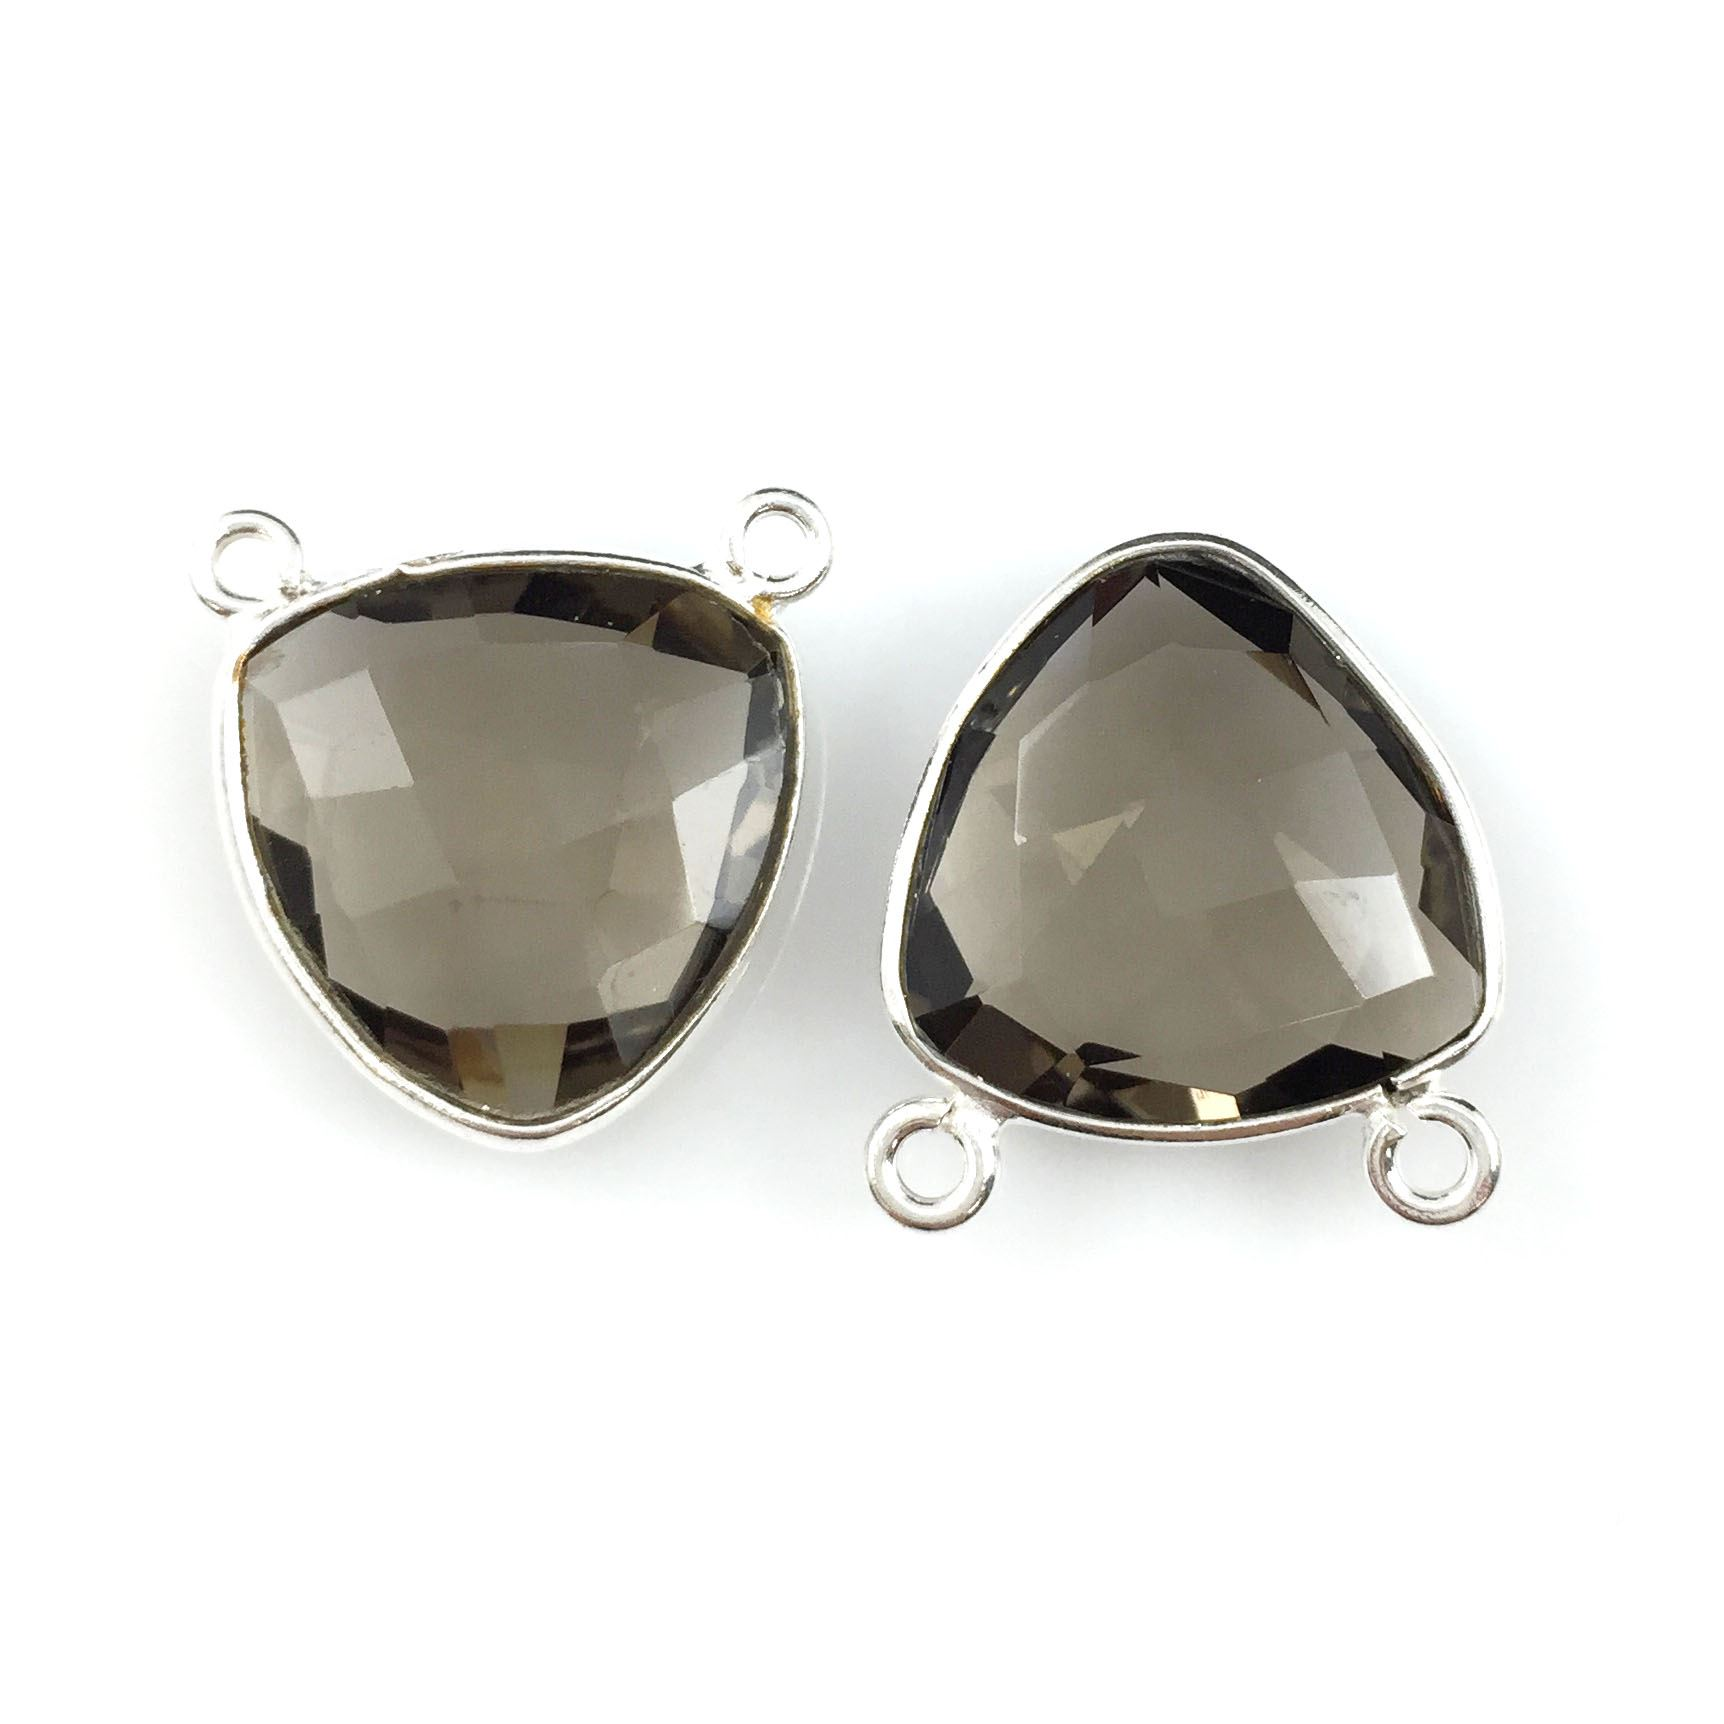 Bezel Gemstone Connector Pendant - Smokey Quartz- Sterling Silver - Small Trillion Shaped Faceted - 15mm - 1 piece